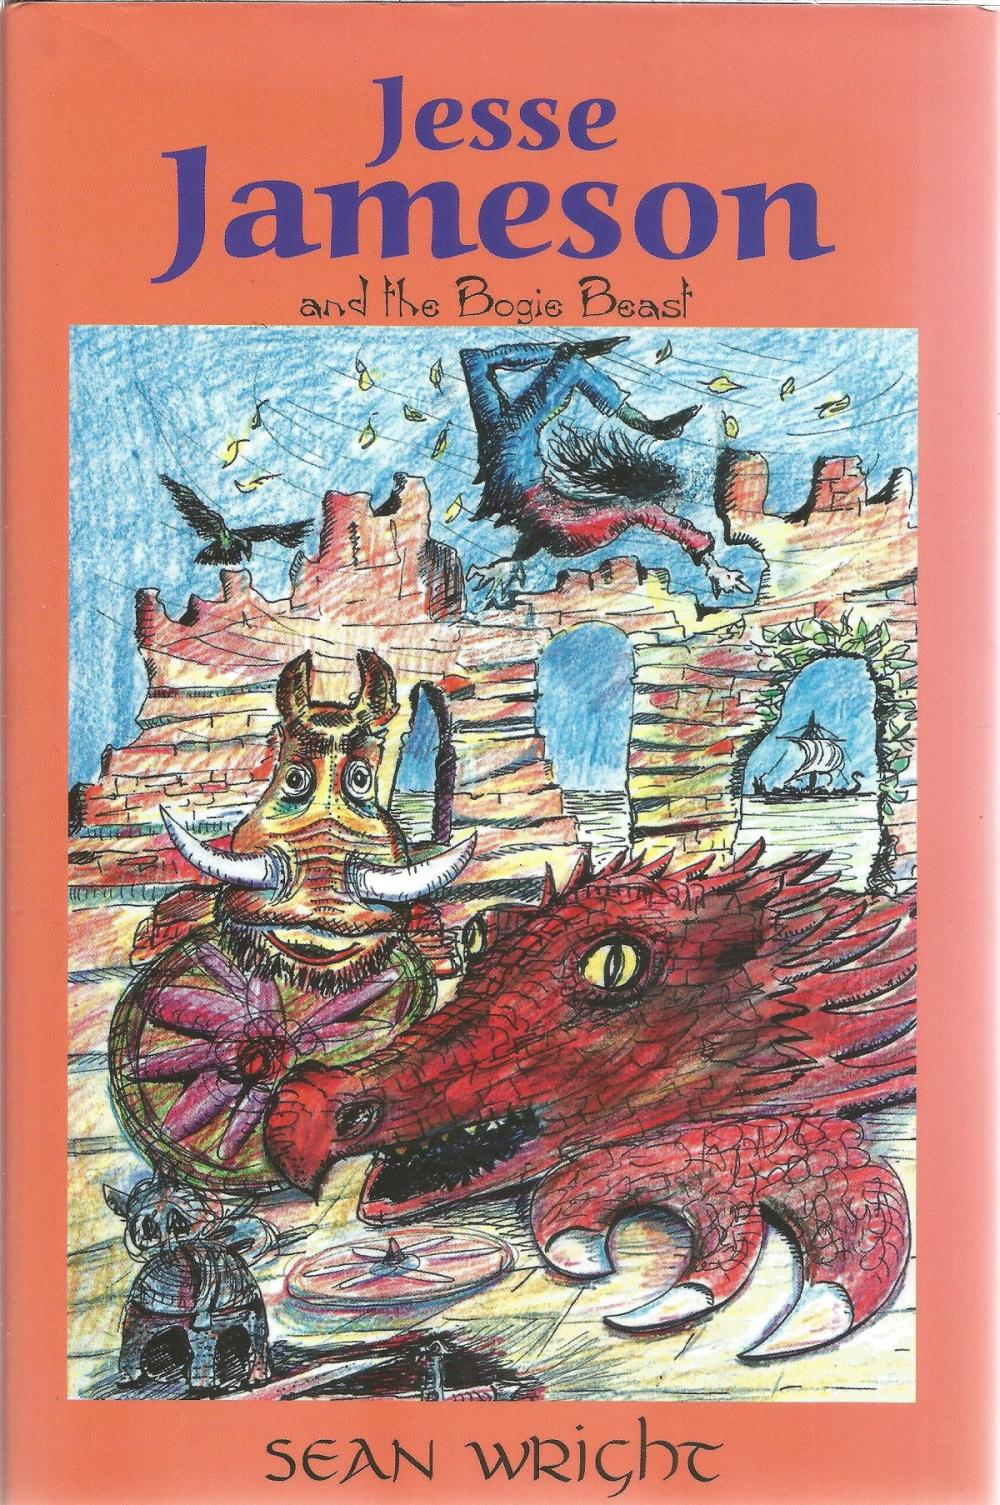 Jesse Jameson and the Bogie Beast by Sean Wright. Signed by the Author special limited edition